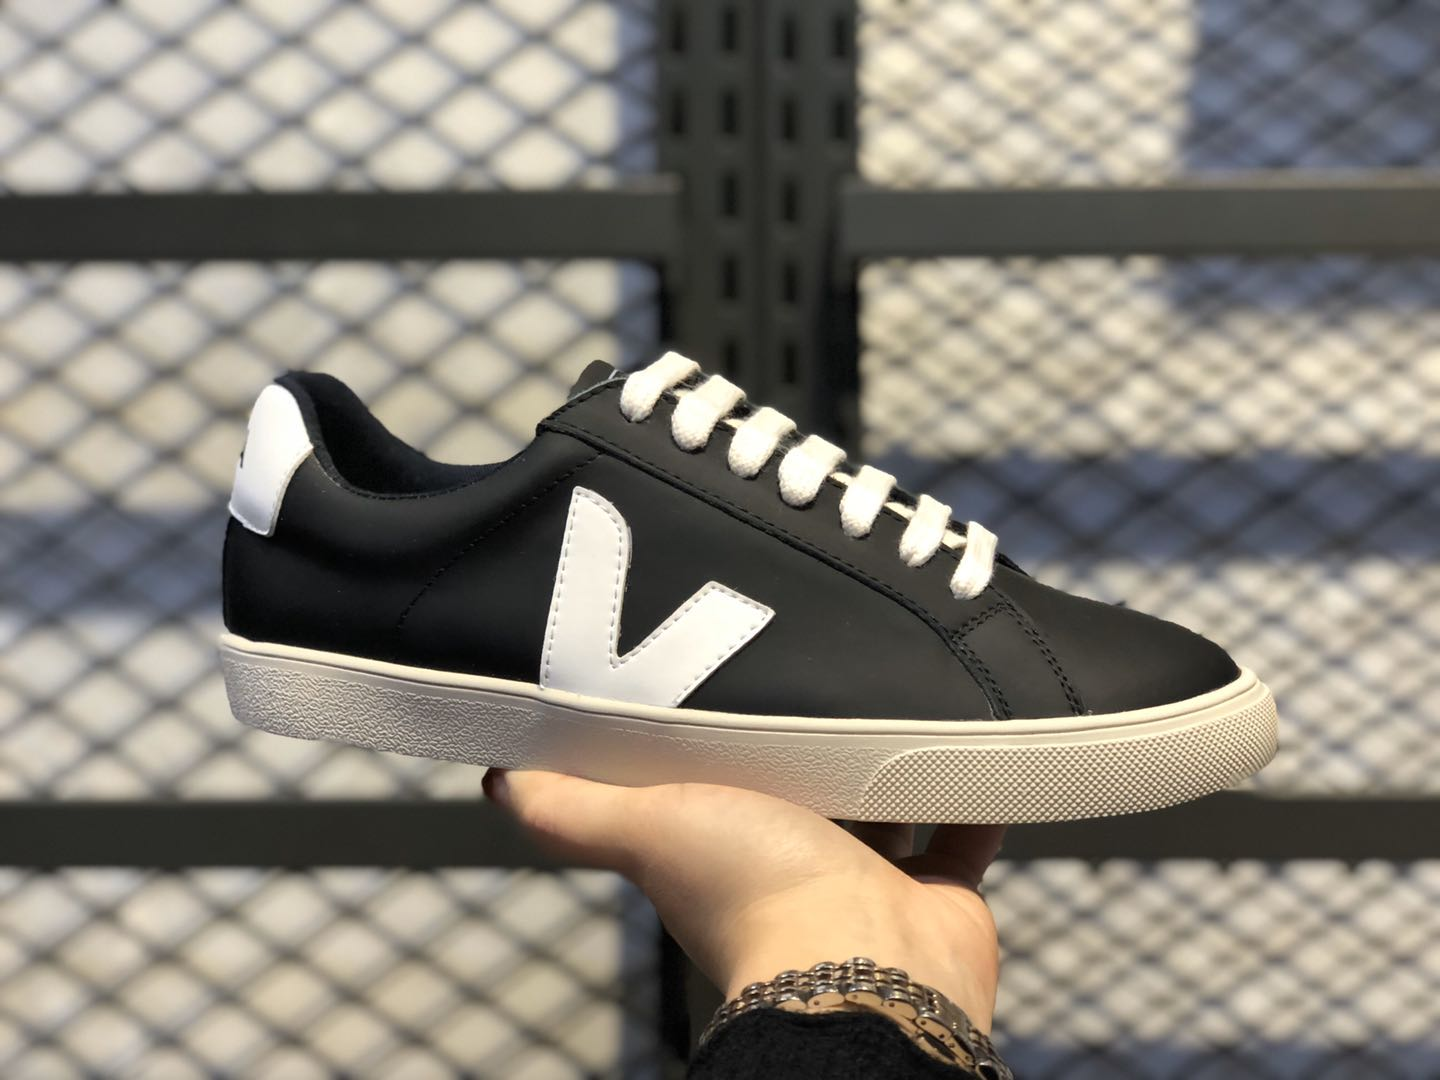 Veja Leather Extra Top Quality Sneakers Black/White Online Buy